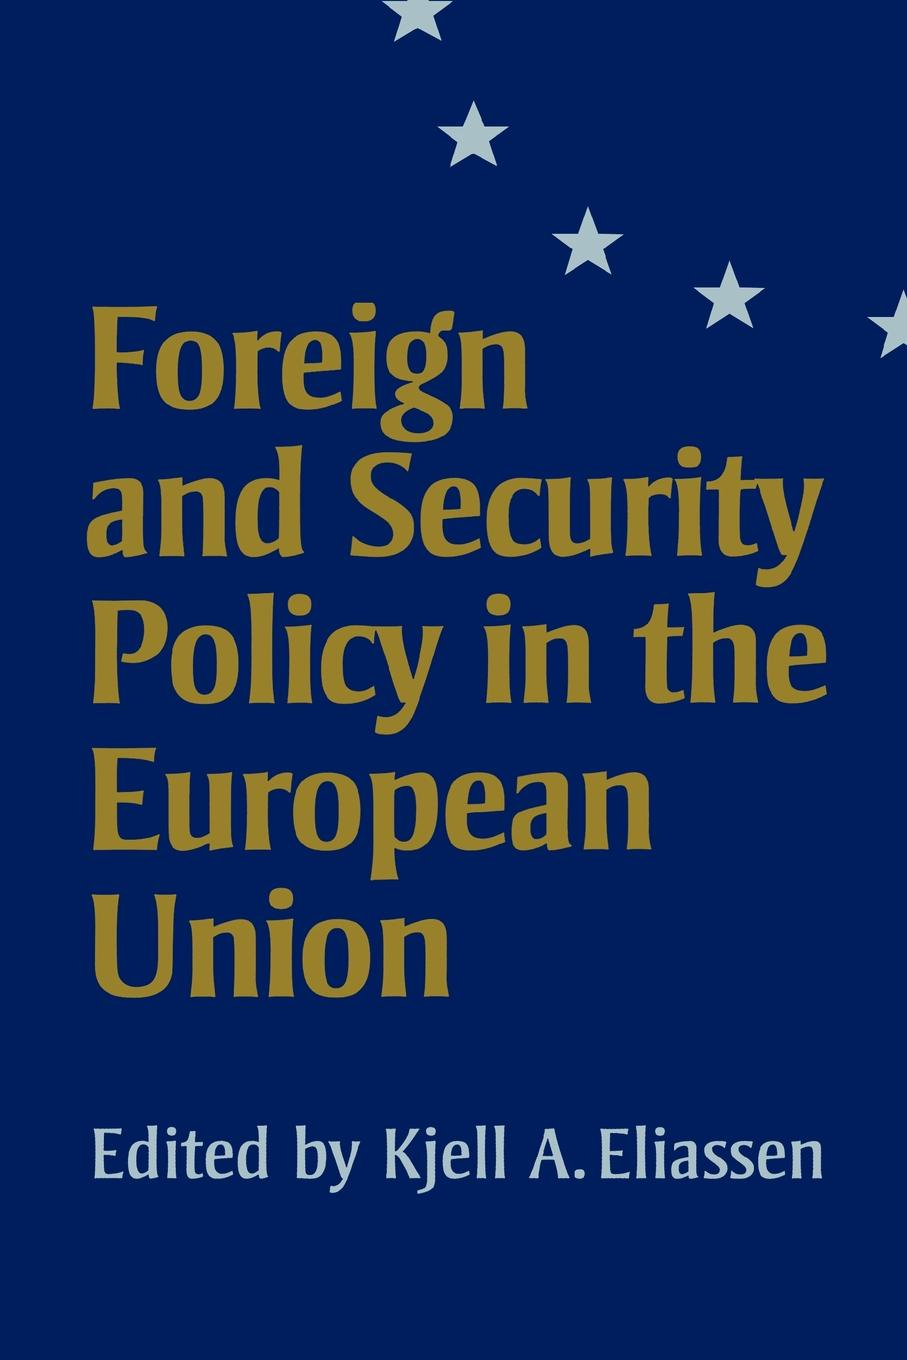 Foreign and Security Policy in the European Union sonja kirschner assessment of the language education policy in austria and its fitness for purpose within the european union